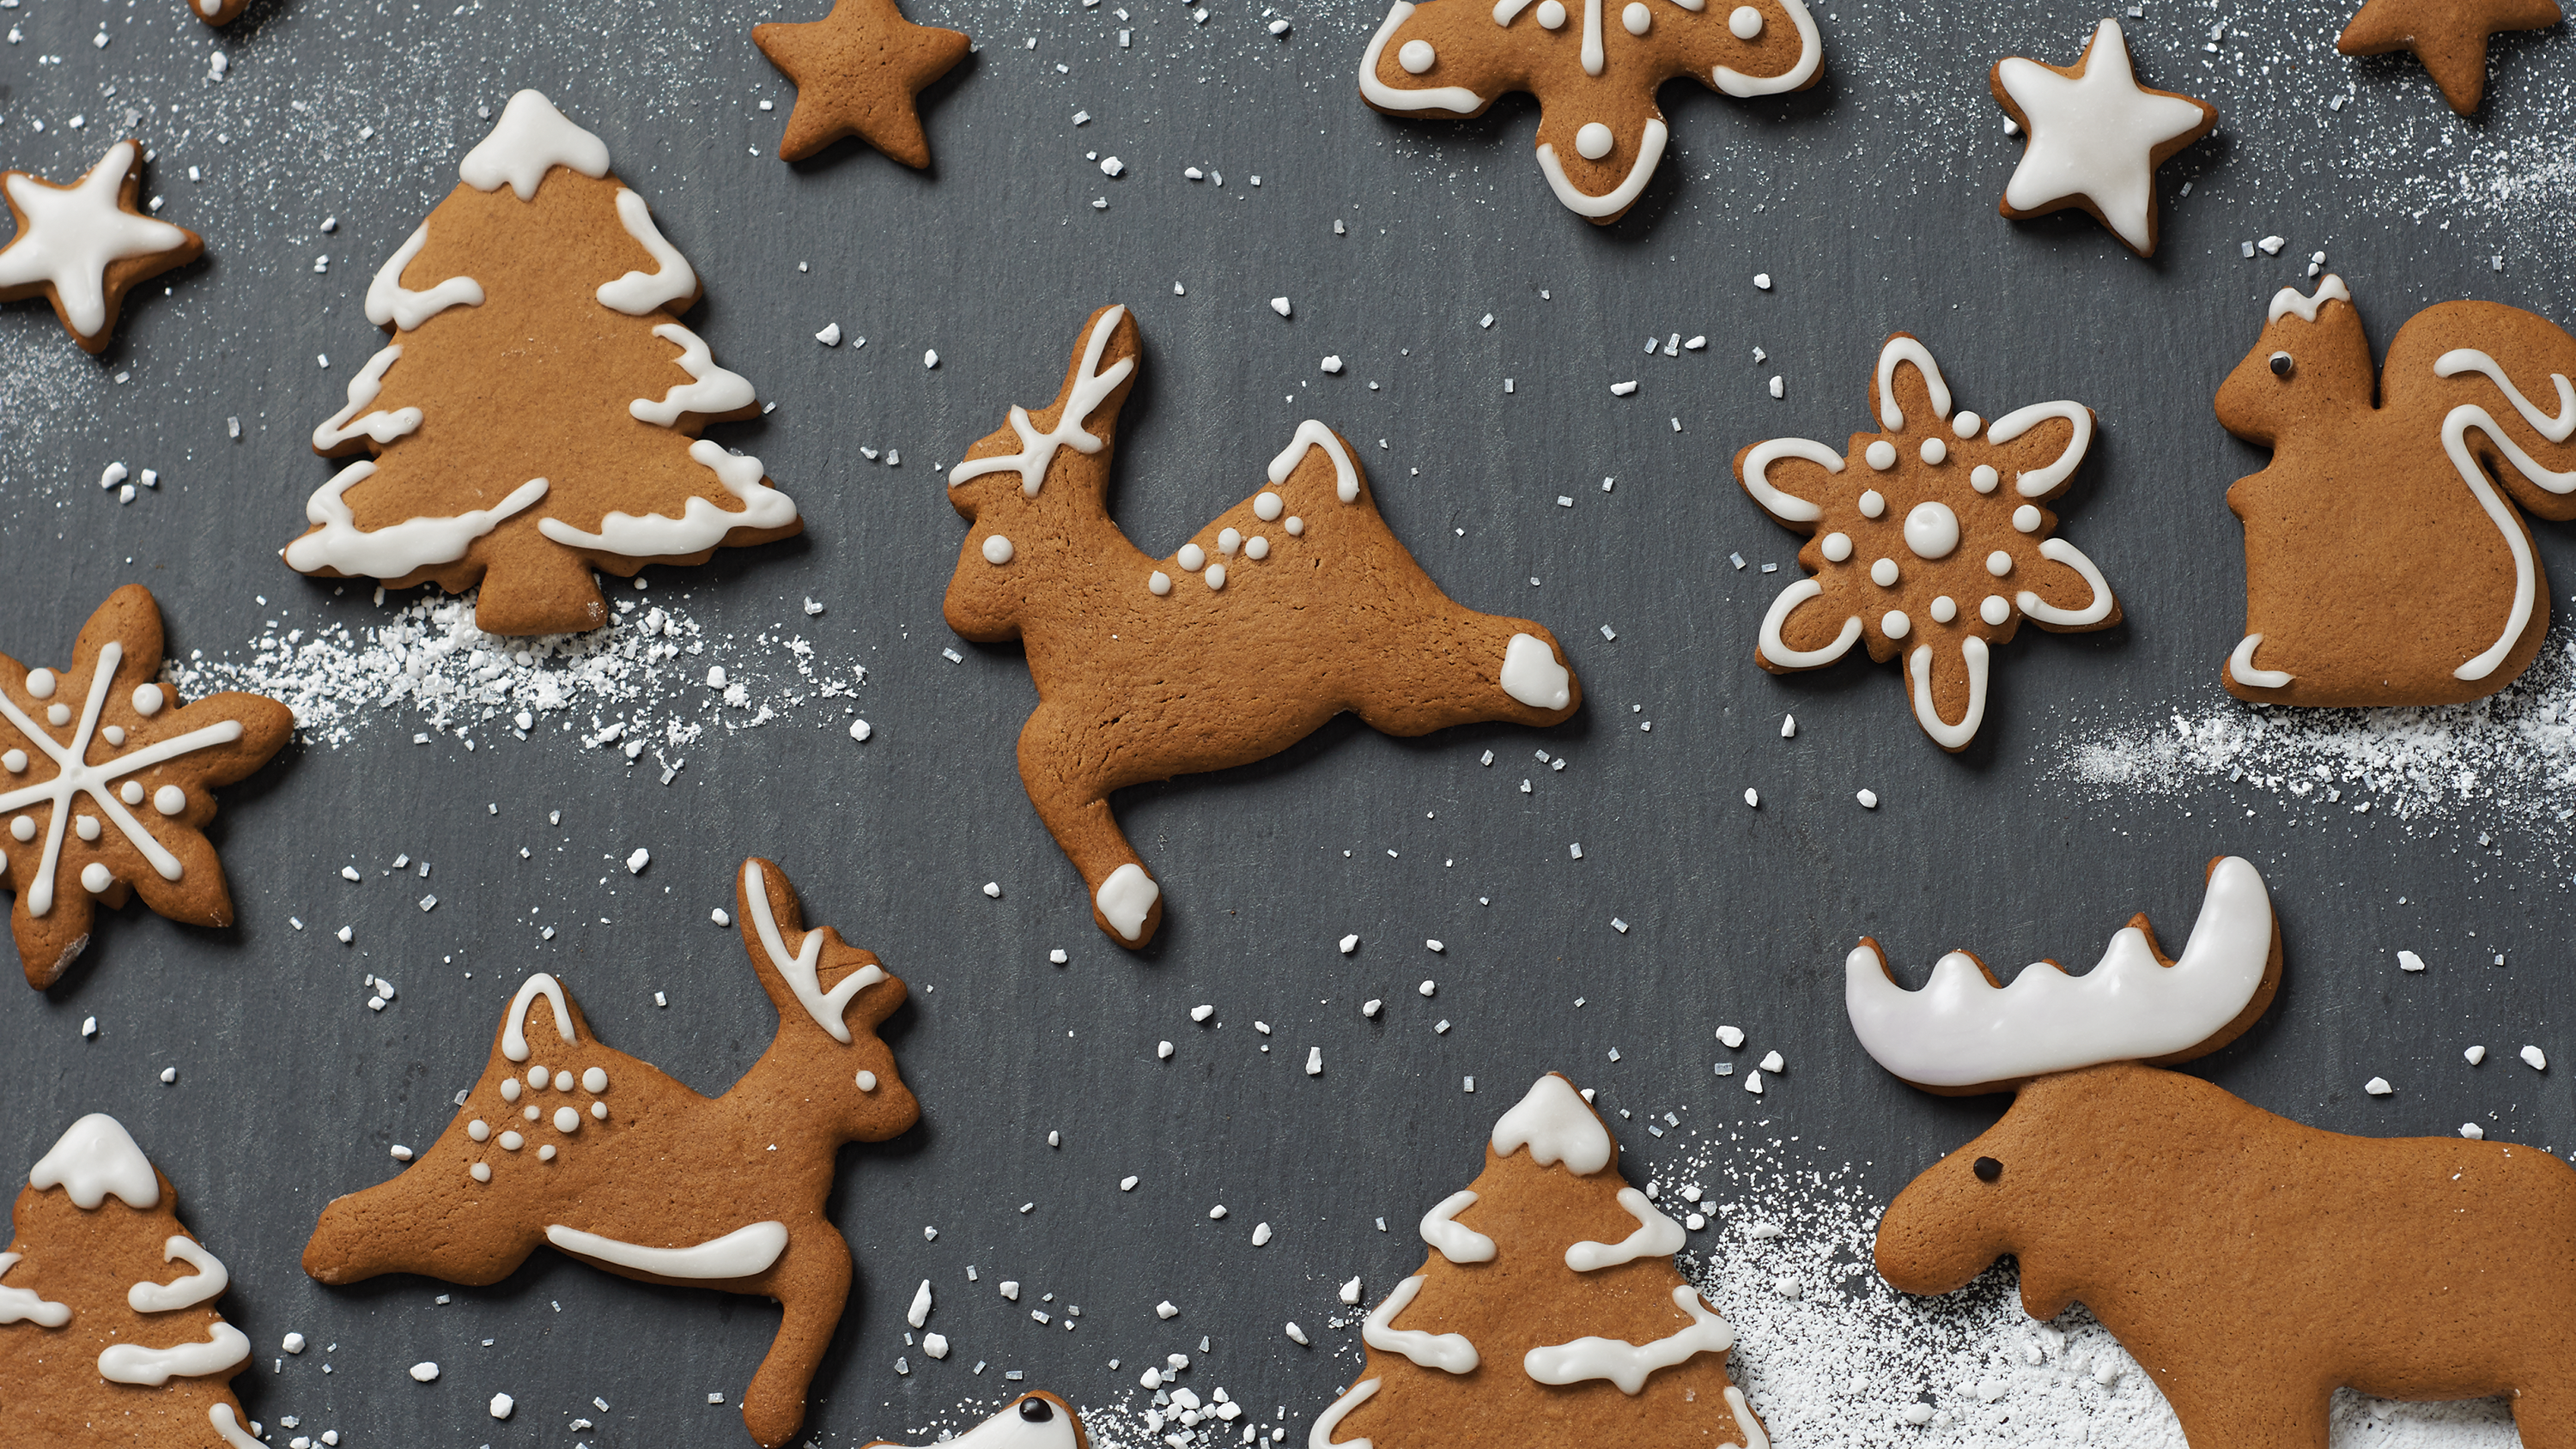 Gingerbread Cookies In The Shapes Of Christmas Trees And Reindeer